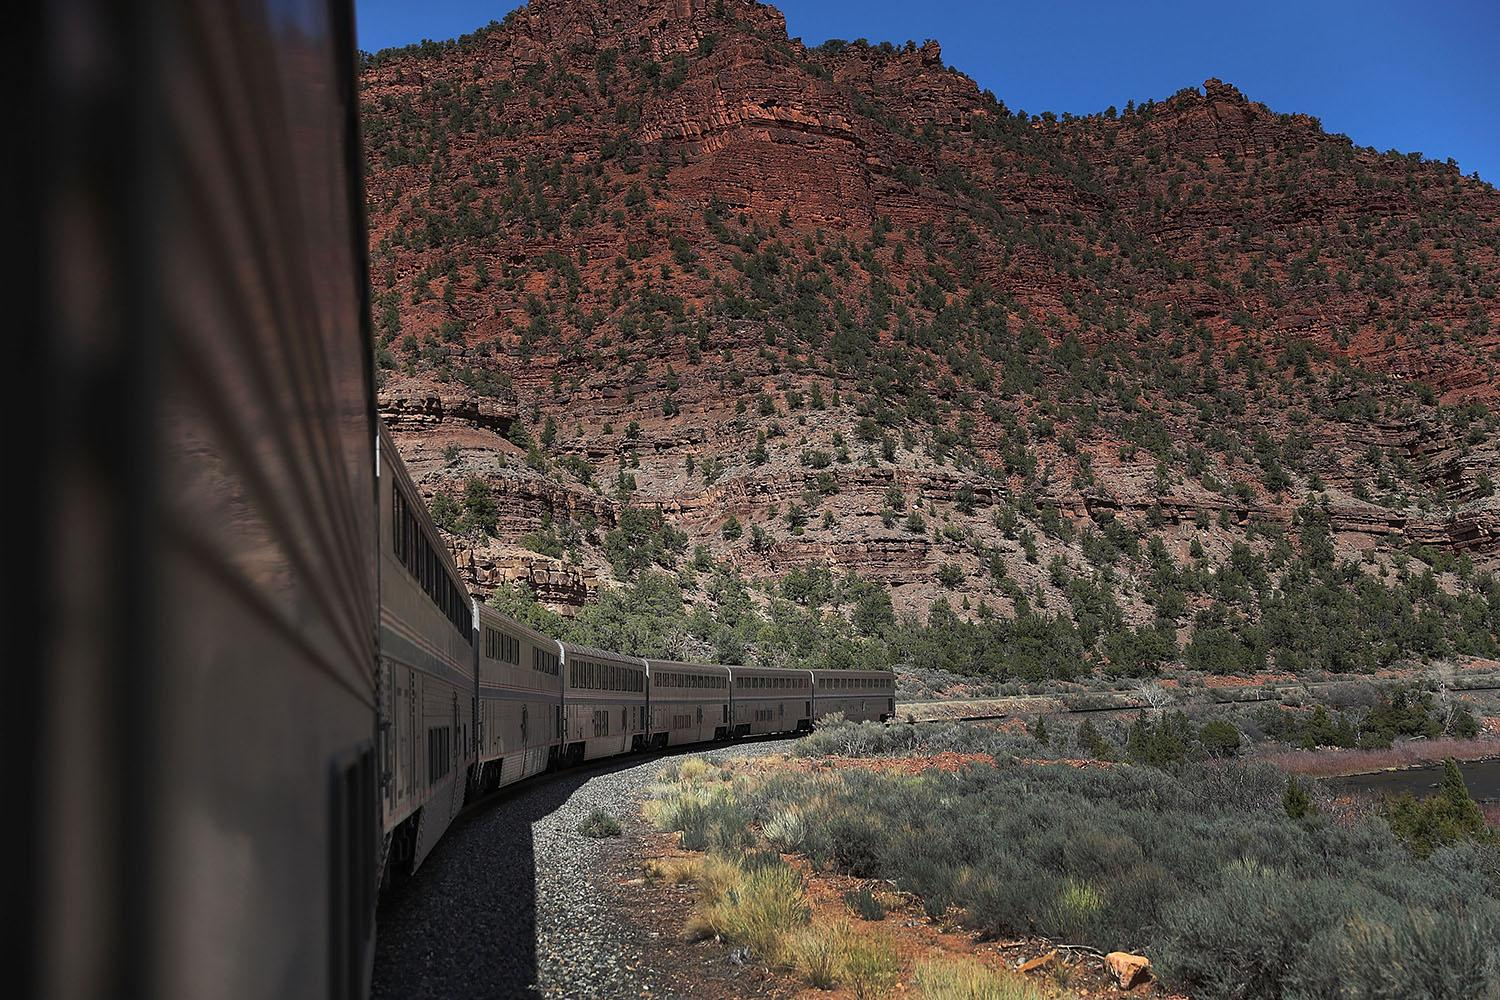 <p>Amtrak's California Zephyr rolls along the rails during its daily 2,438-mile trip to Emeryville/San Francisco from Chicago, March 24, 2017, in Glenwood Springs, Colo. (Photo: Joe Raedle/Getty Images) </p>